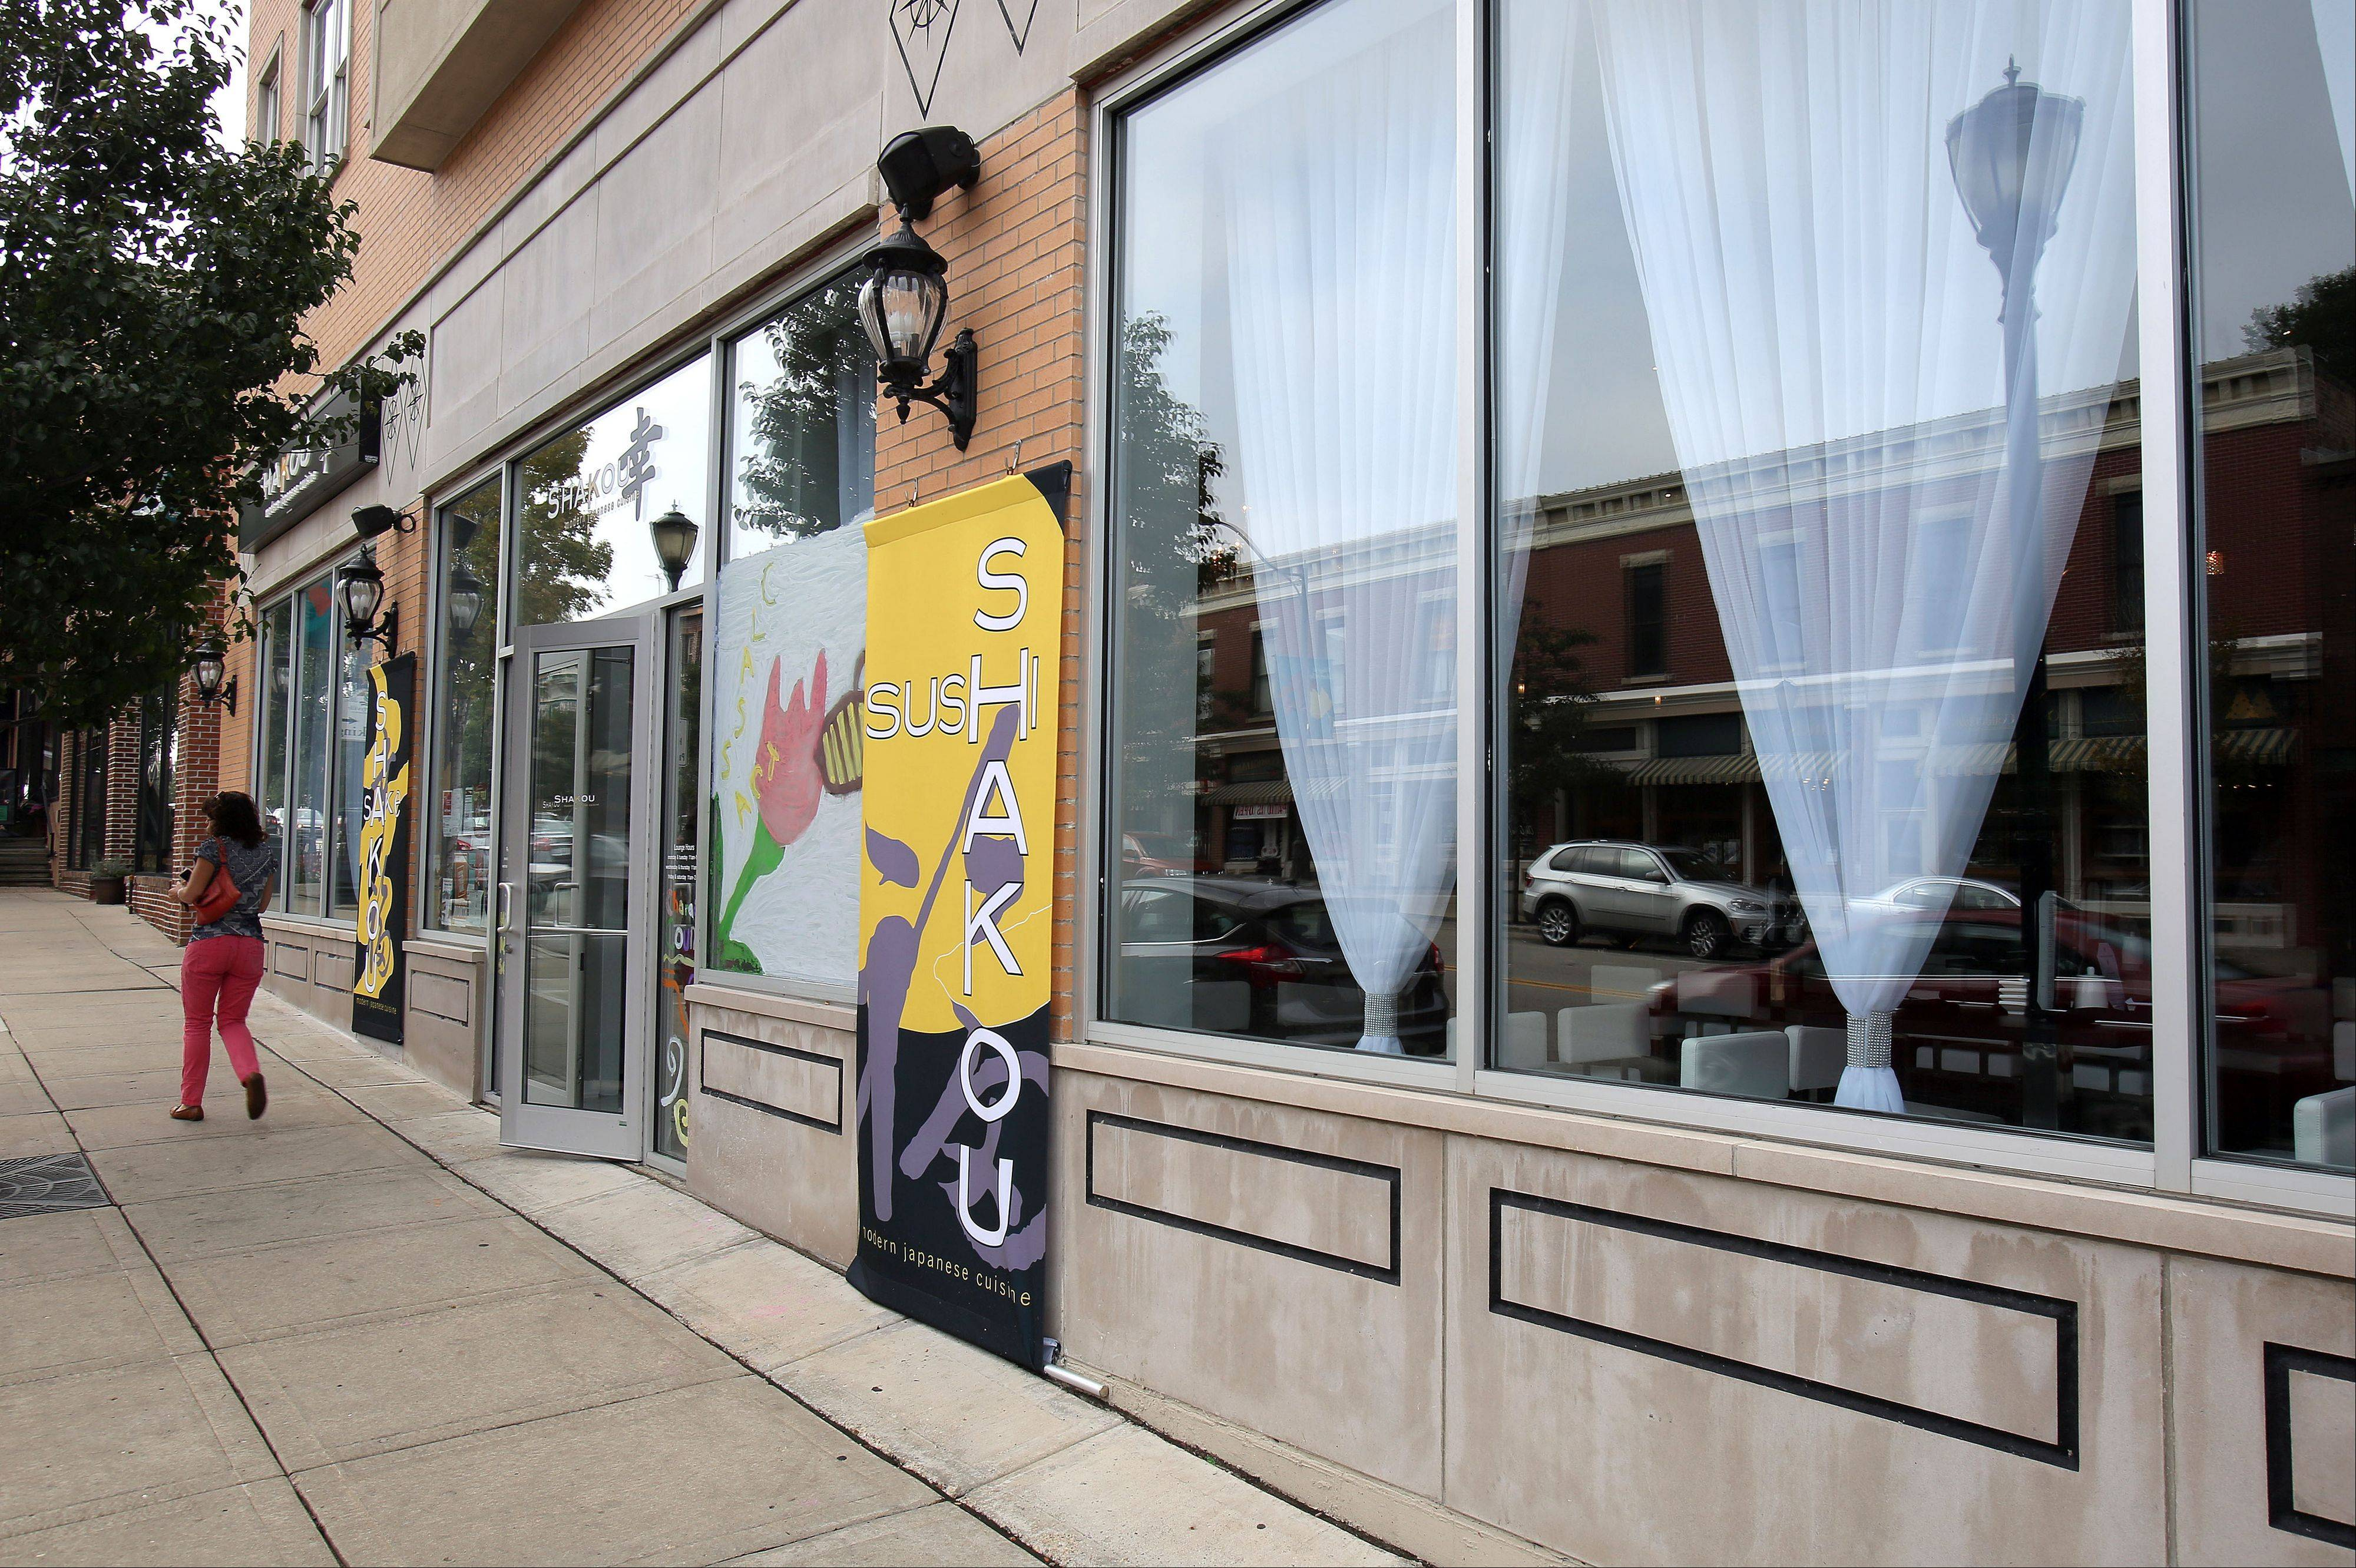 Shakou holds a prominent place in downtown Libertyville's restaurant row.